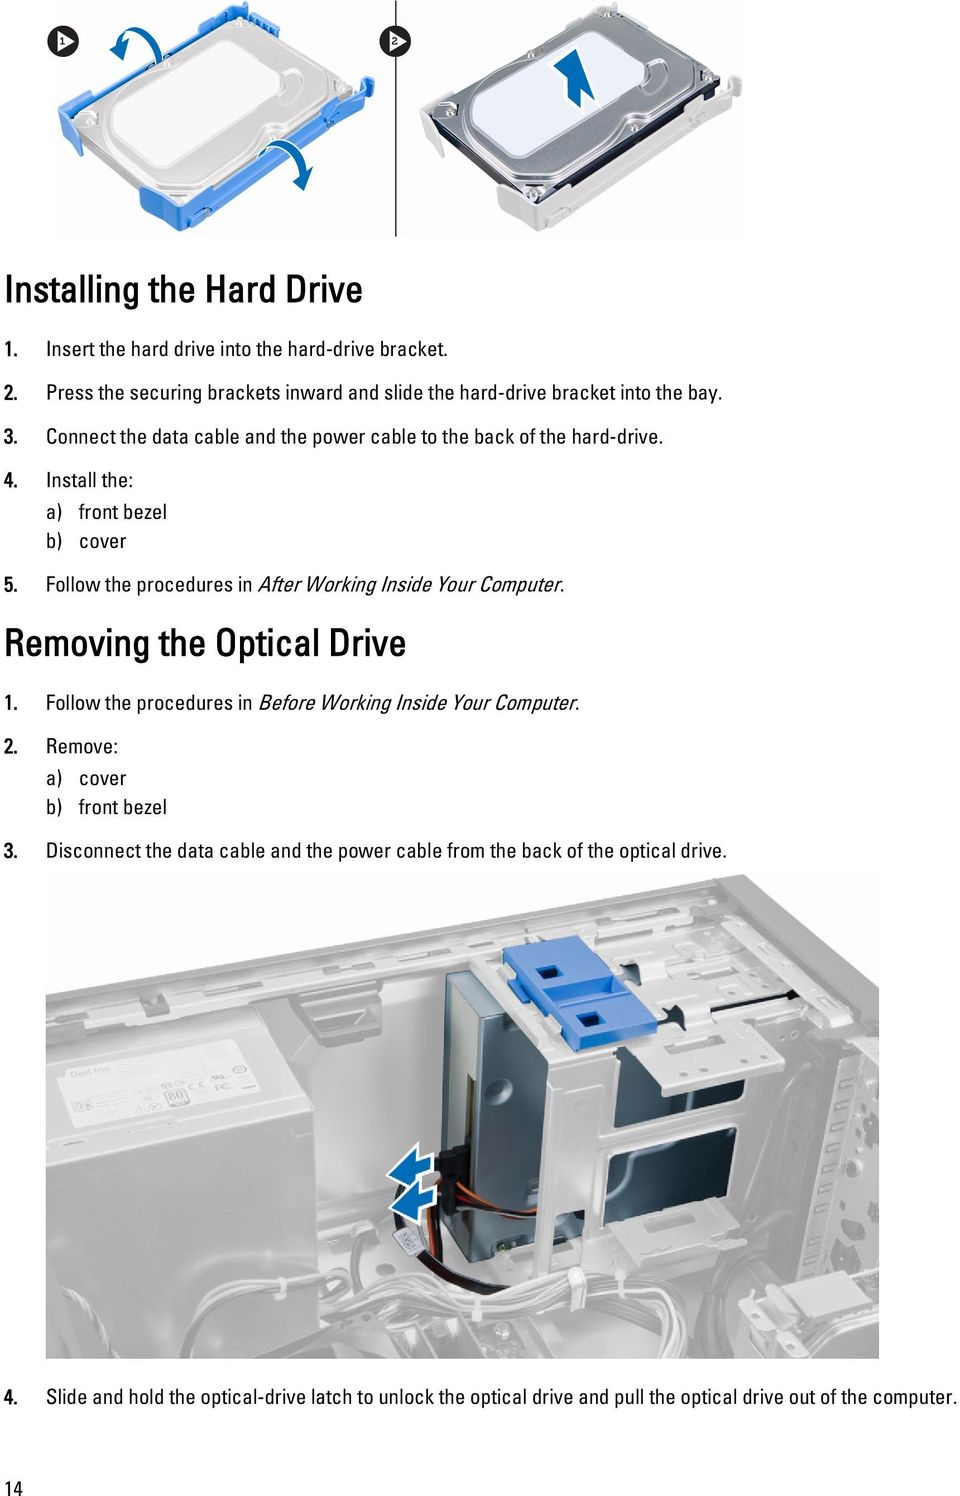 Dell OptiPlex 9020 Mini Tower Owner's Manual - PDF